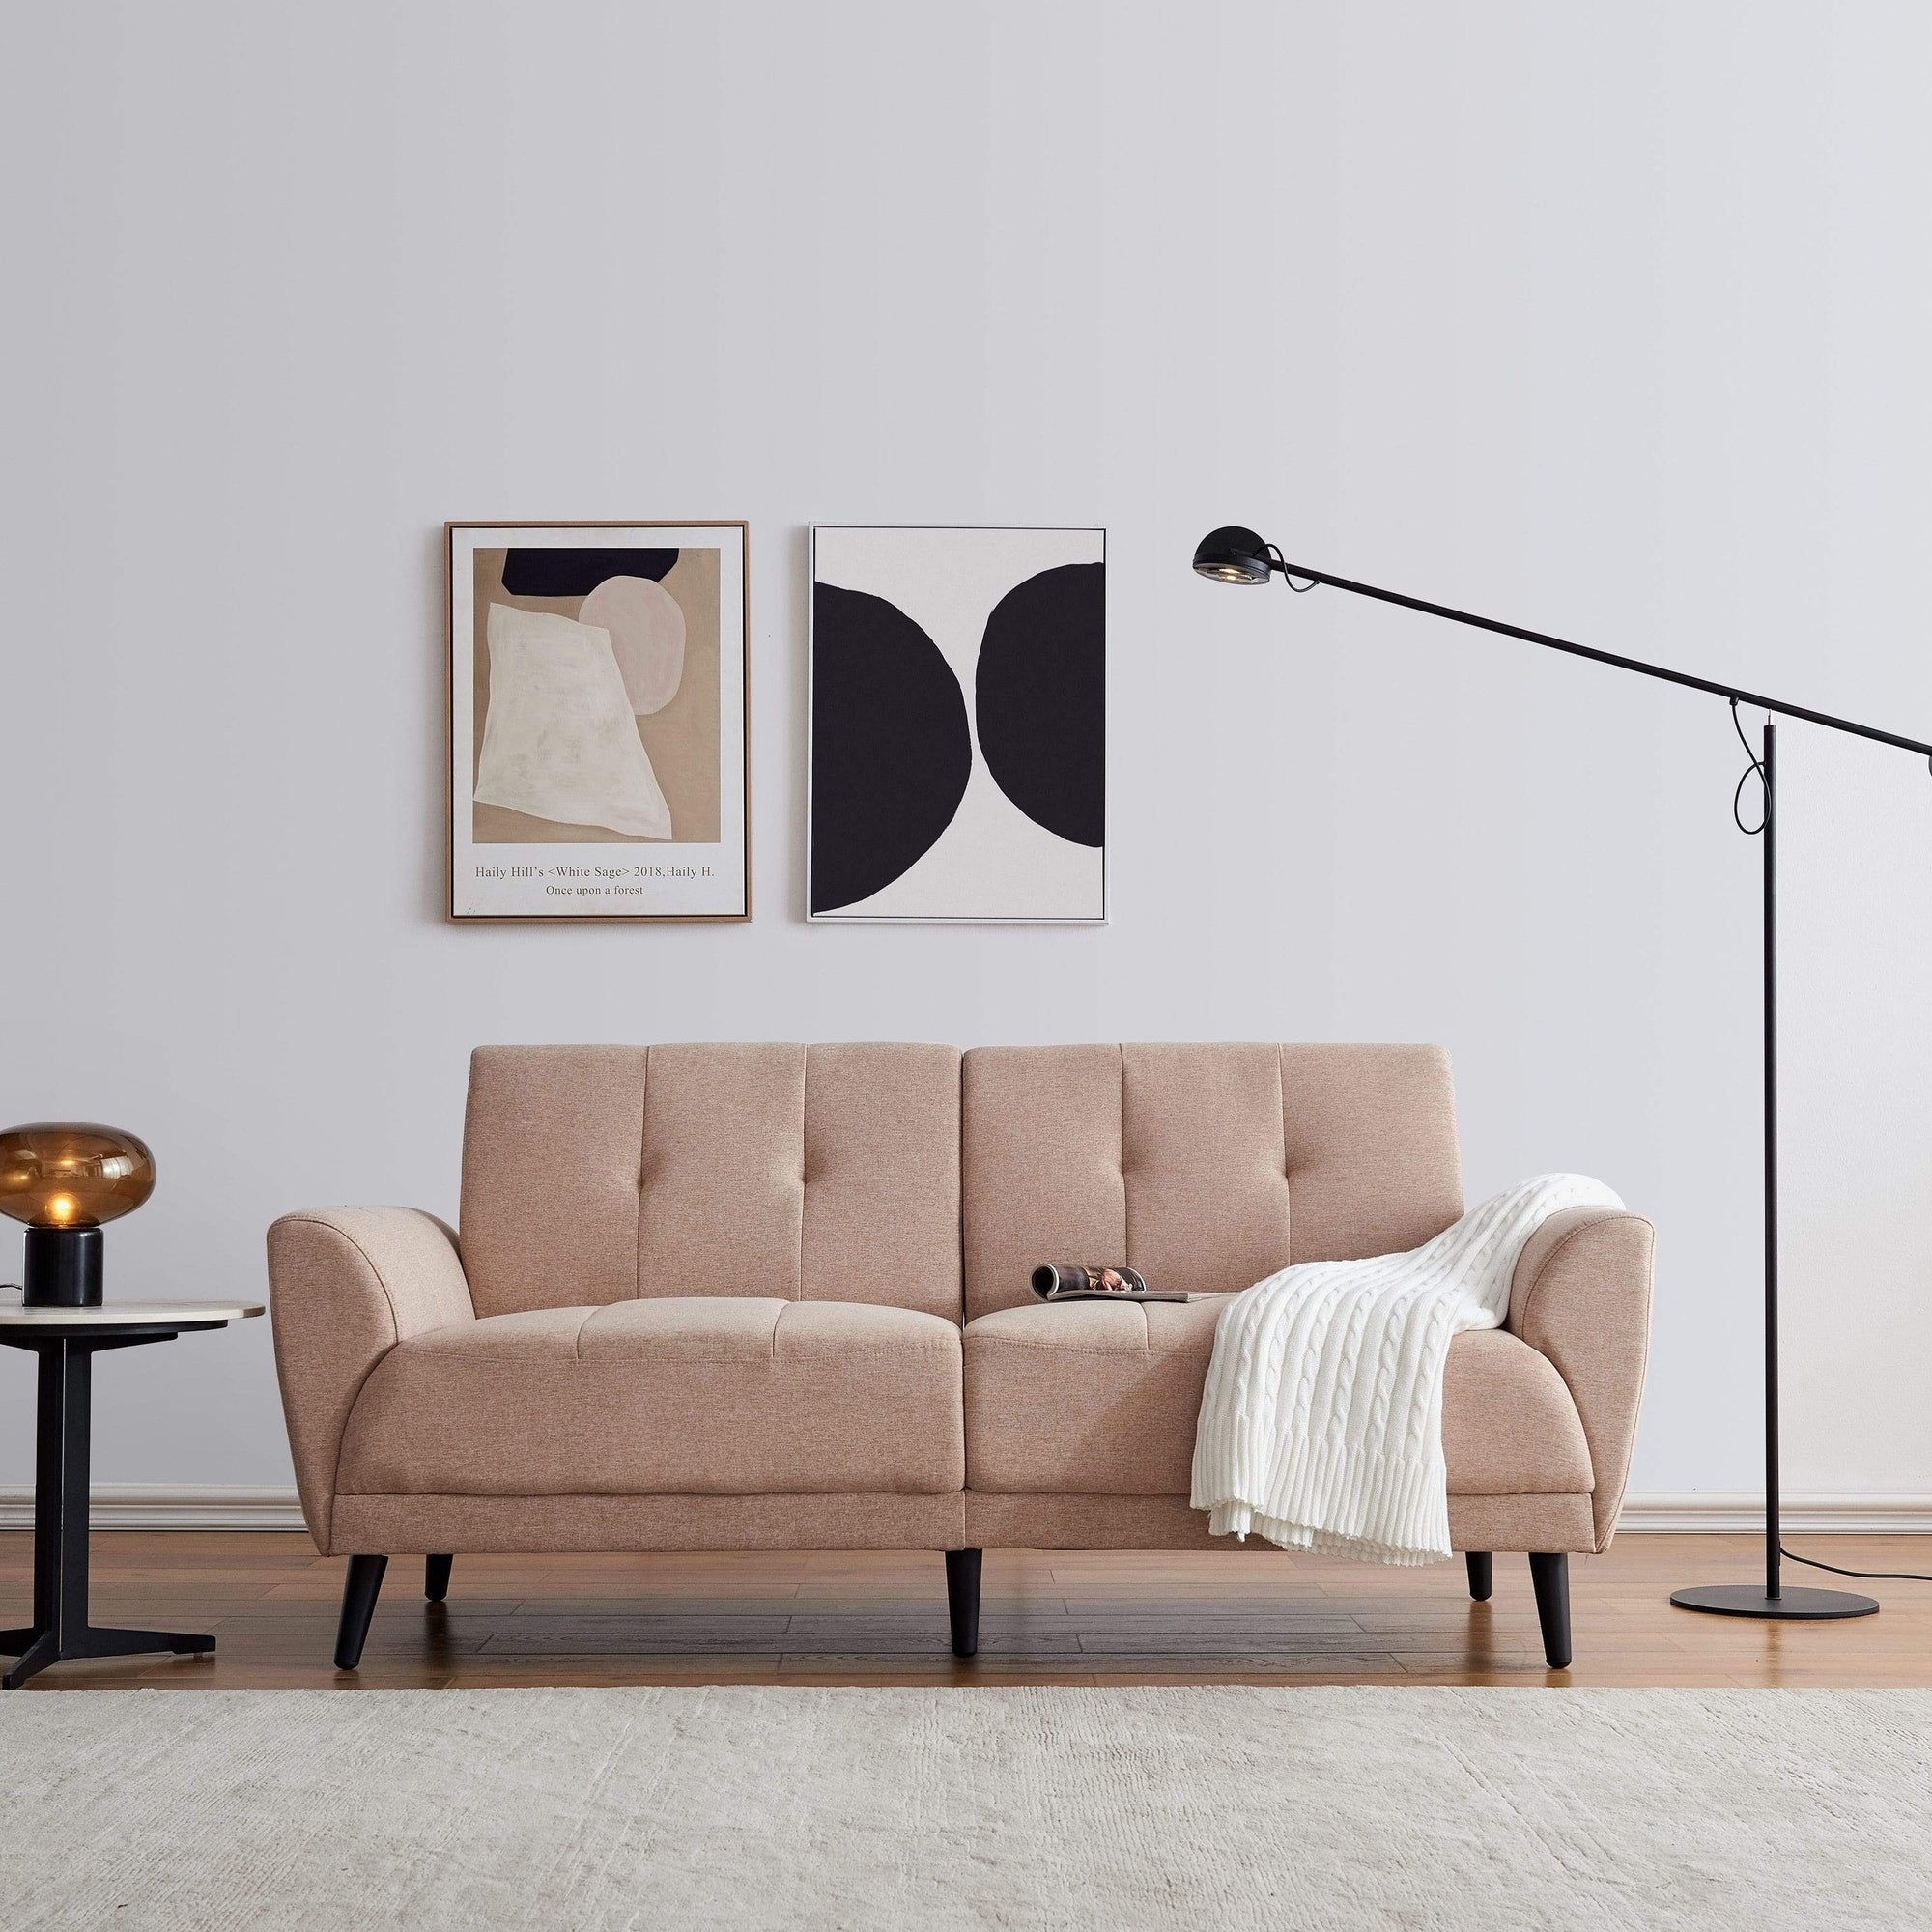 Mid Century Modern Loveseat | 2 seat sofa | Classic Sofa | loveseat couch | loveseat sofa | convertible sofa | sectional sofa | living room furniture | compact sofa | sofa furniture | sofa  furniture